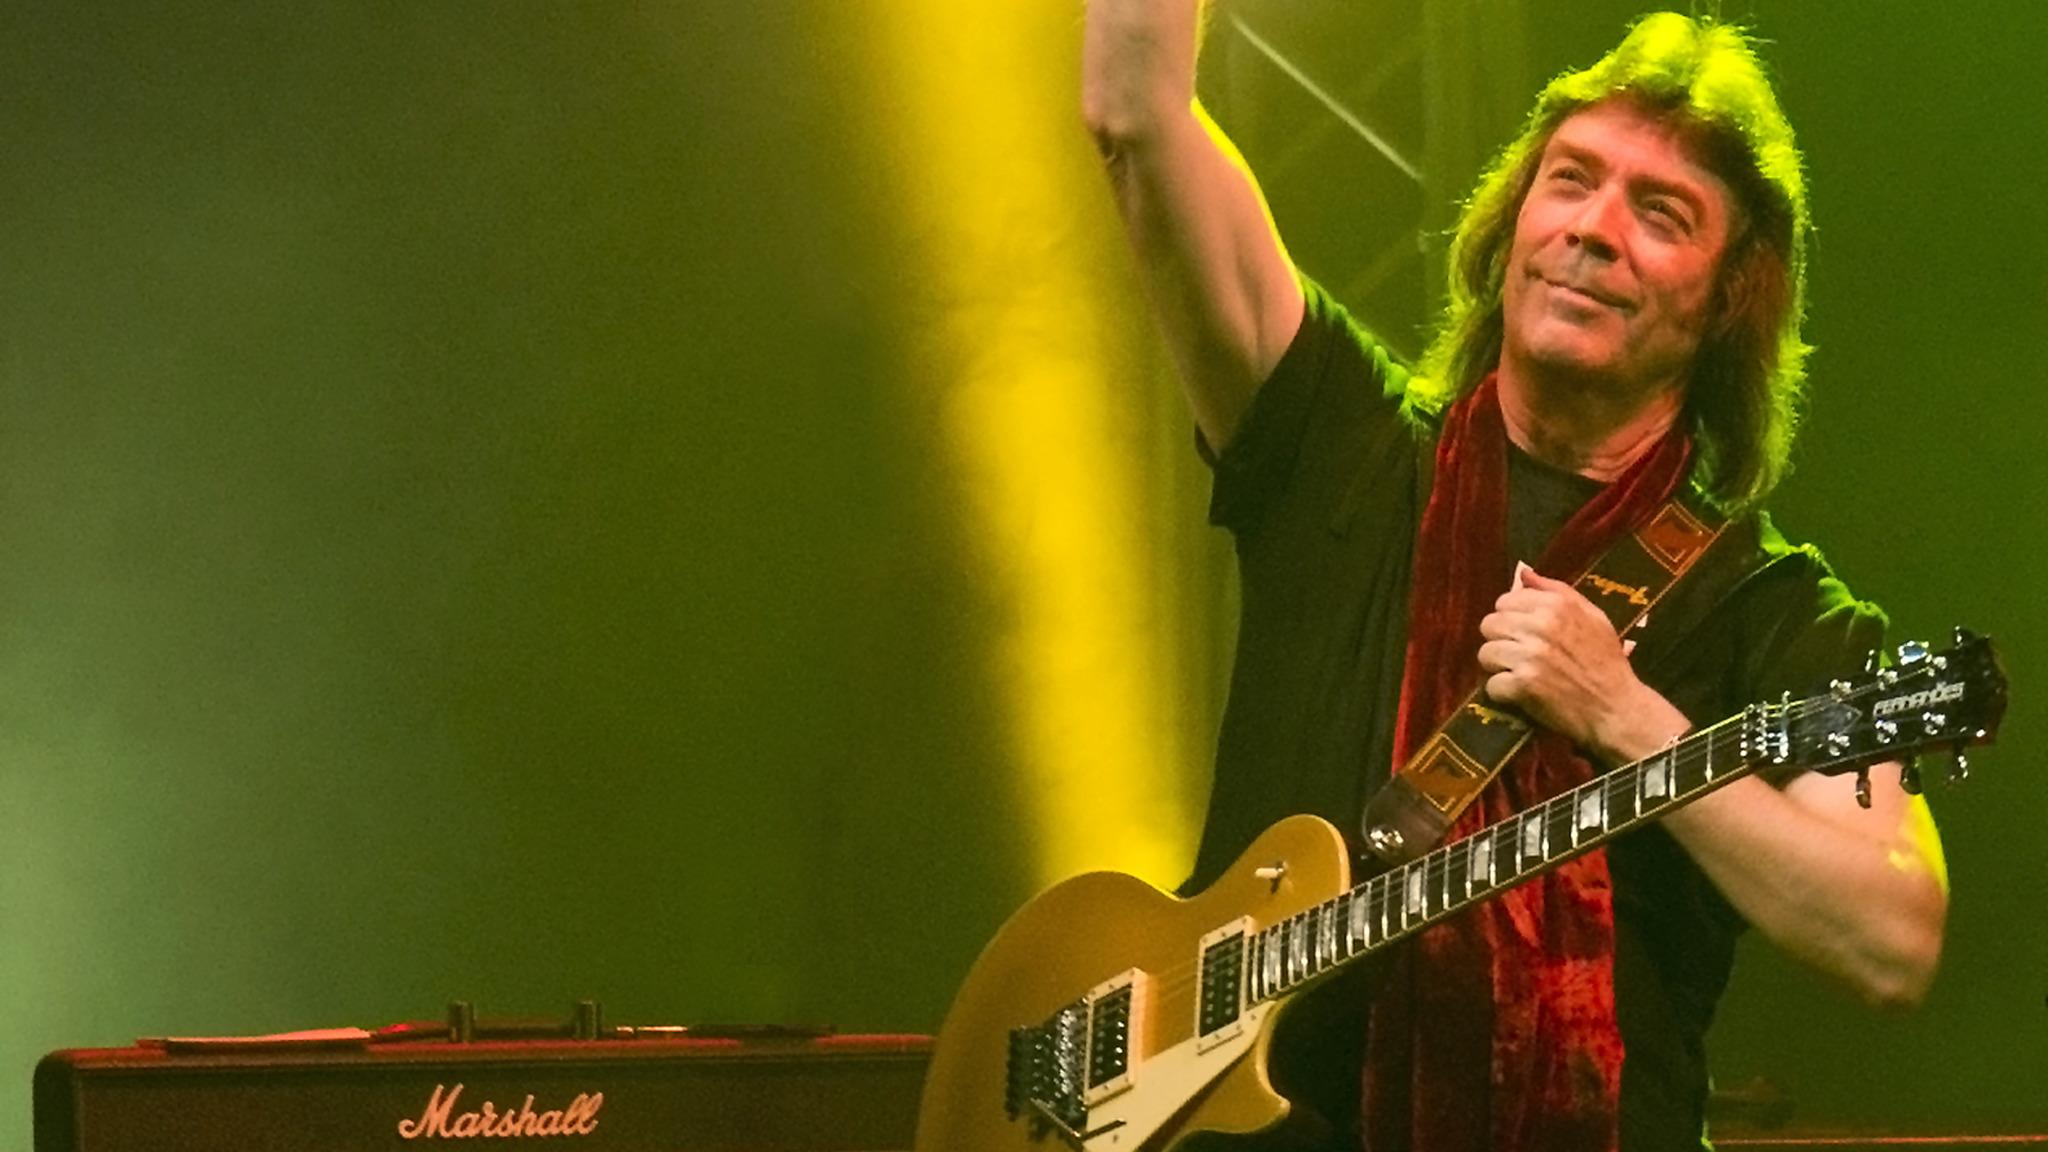 BRE Presents Steve Hackett